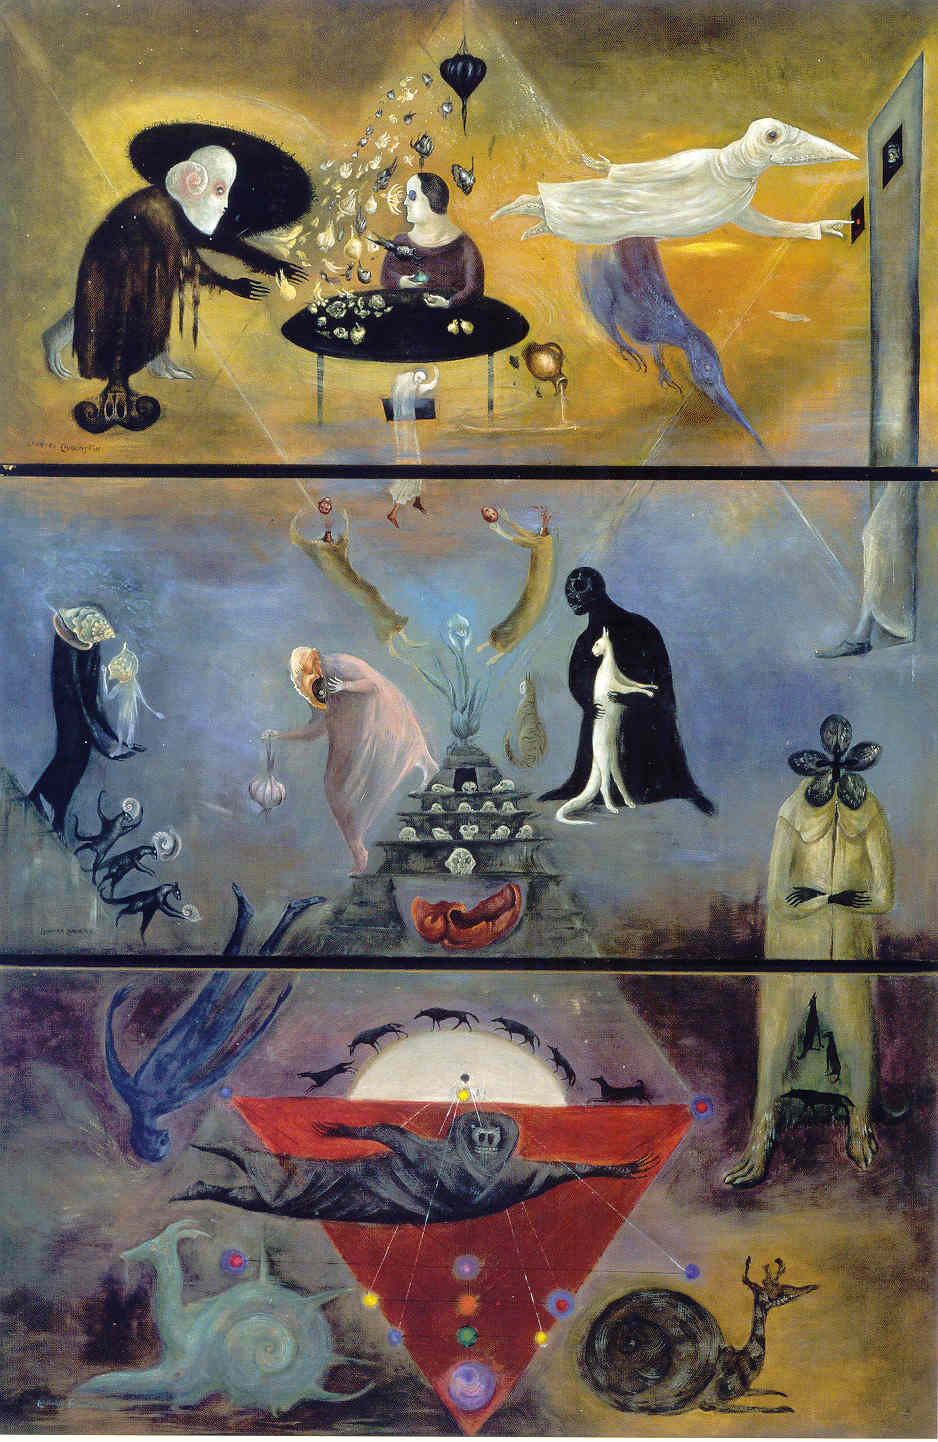 Leonora Carrington, Took my way down II I took my way down, like a messenger, to the deep, 1977